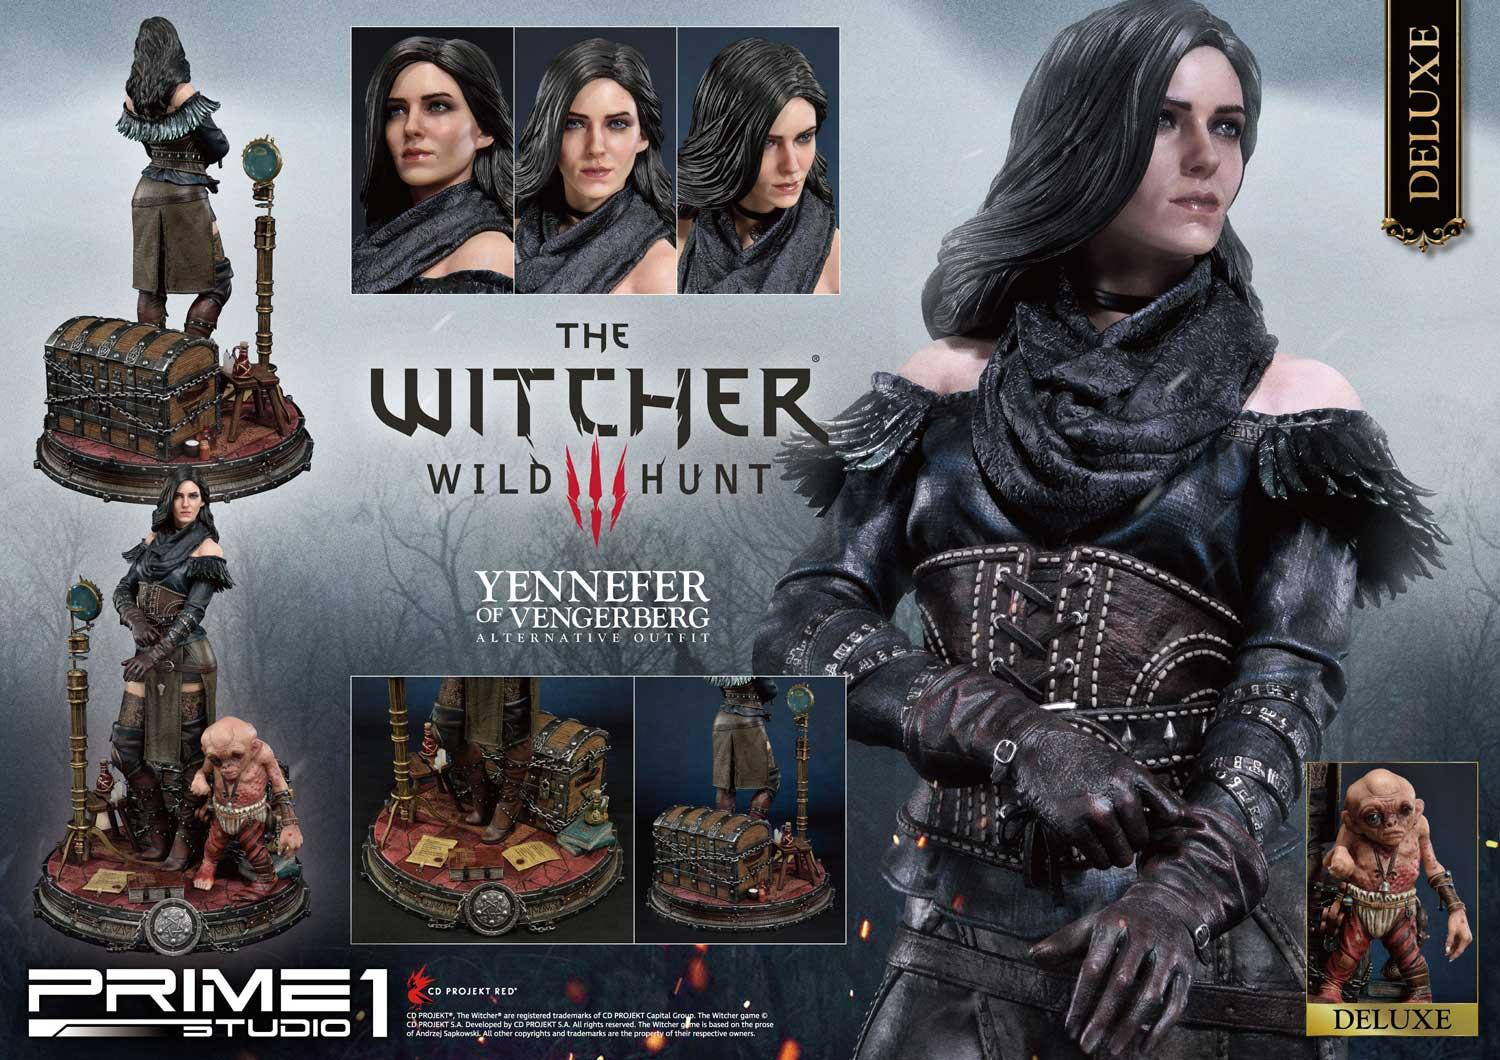 The Witcher 3 Yennefer Gets a Prime 1 Studio Statue